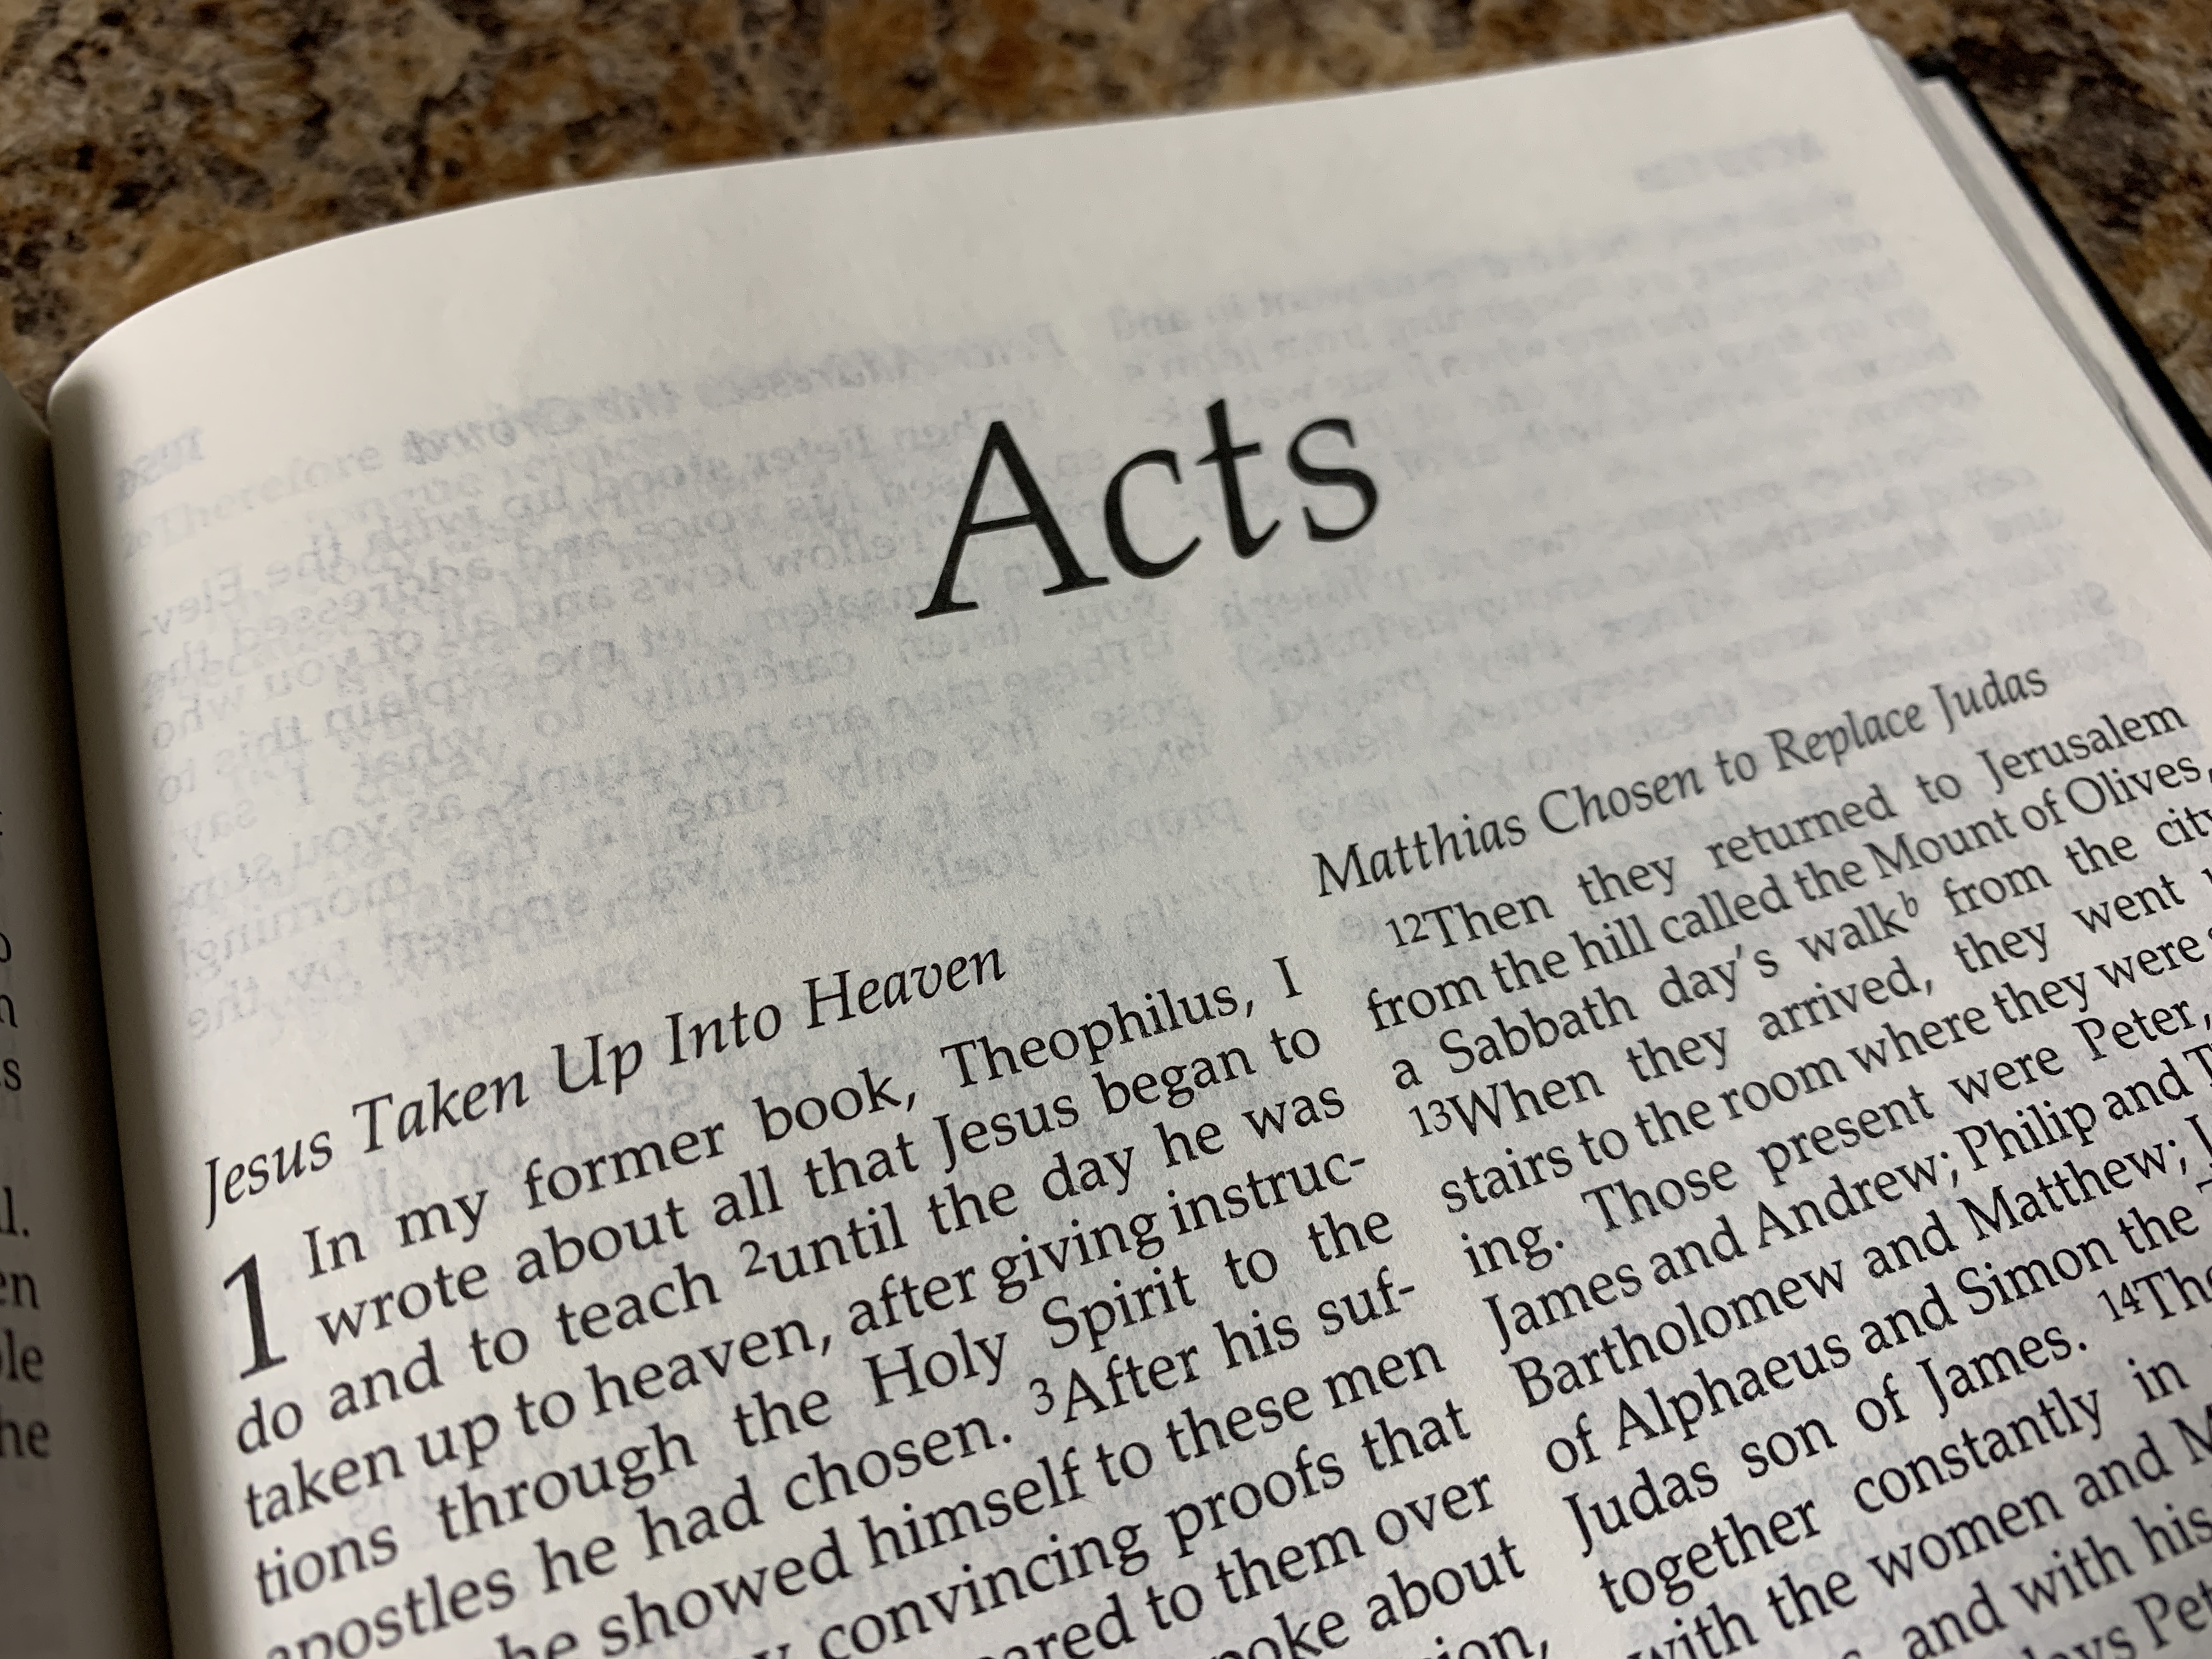 The Book of the Acts of the Apostles